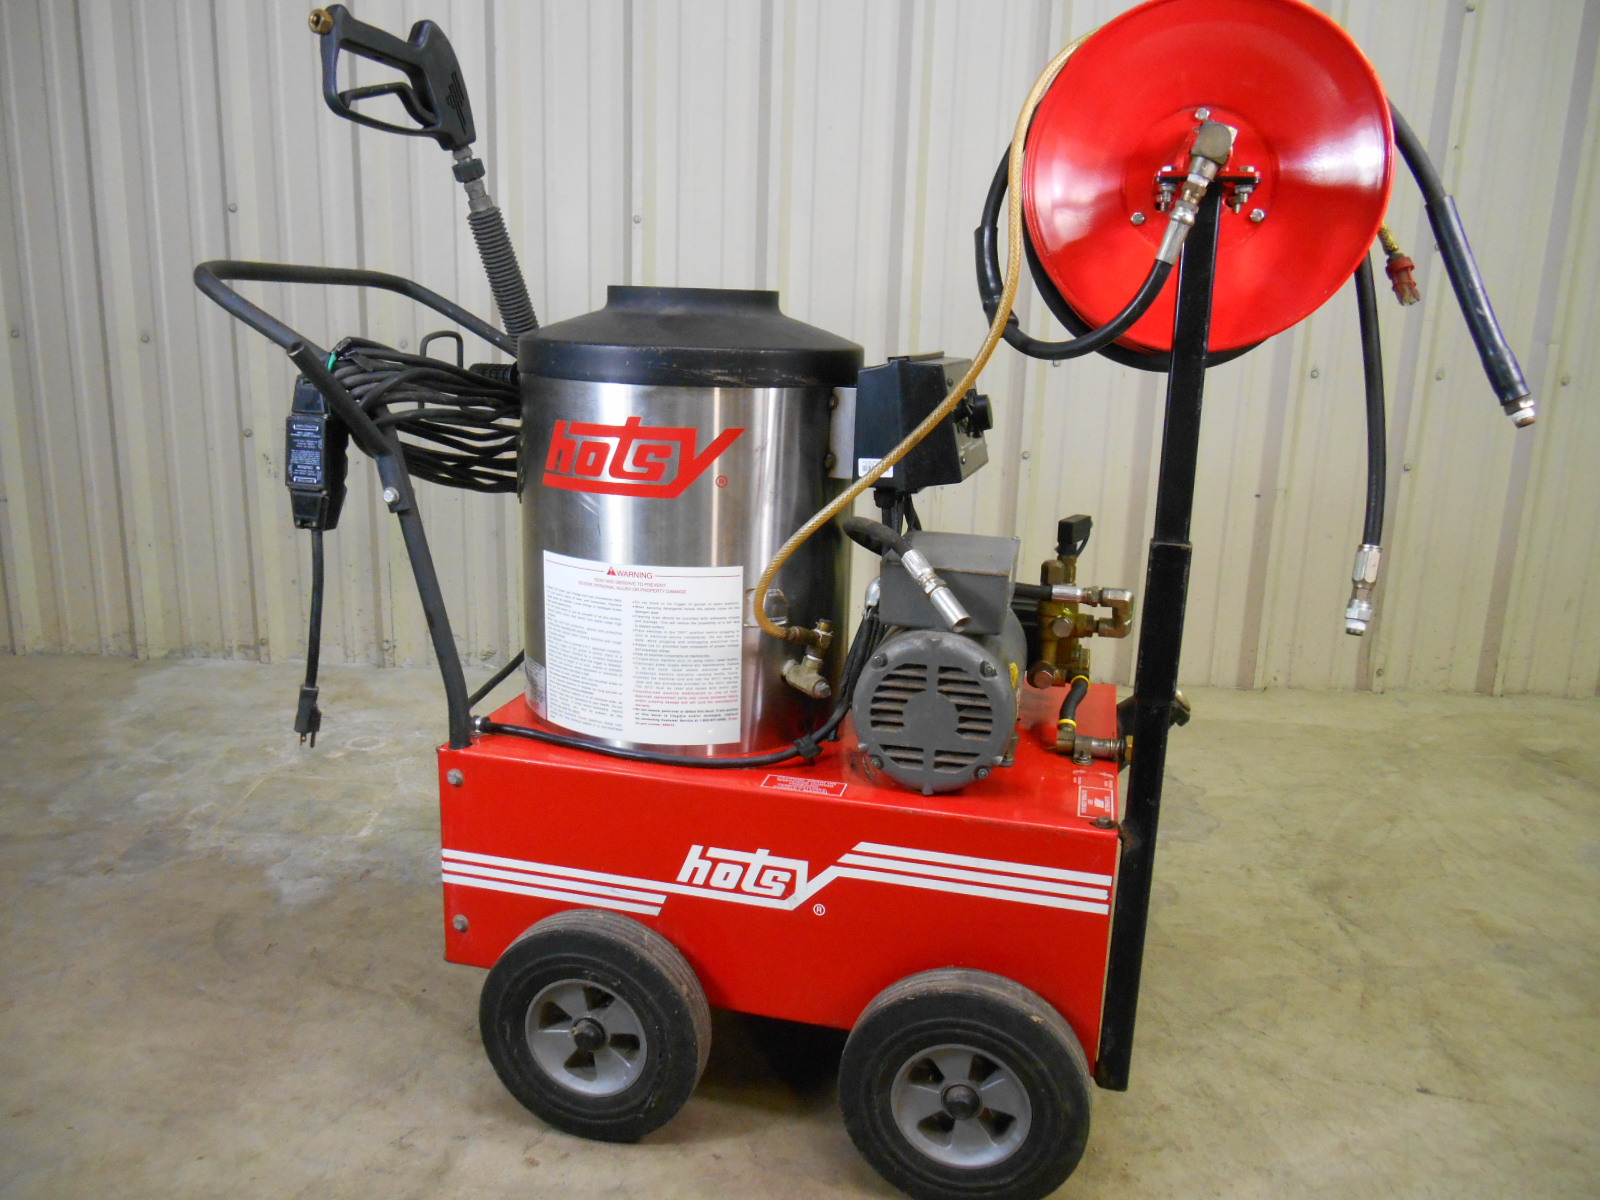 hotsy 555ss electric hotsy pressure washer 1416508350313 used hotsy 555ss electric hotsy hot water heated pressure washer Hotsy Pressure Washer Parts Diagram at readyjetset.co